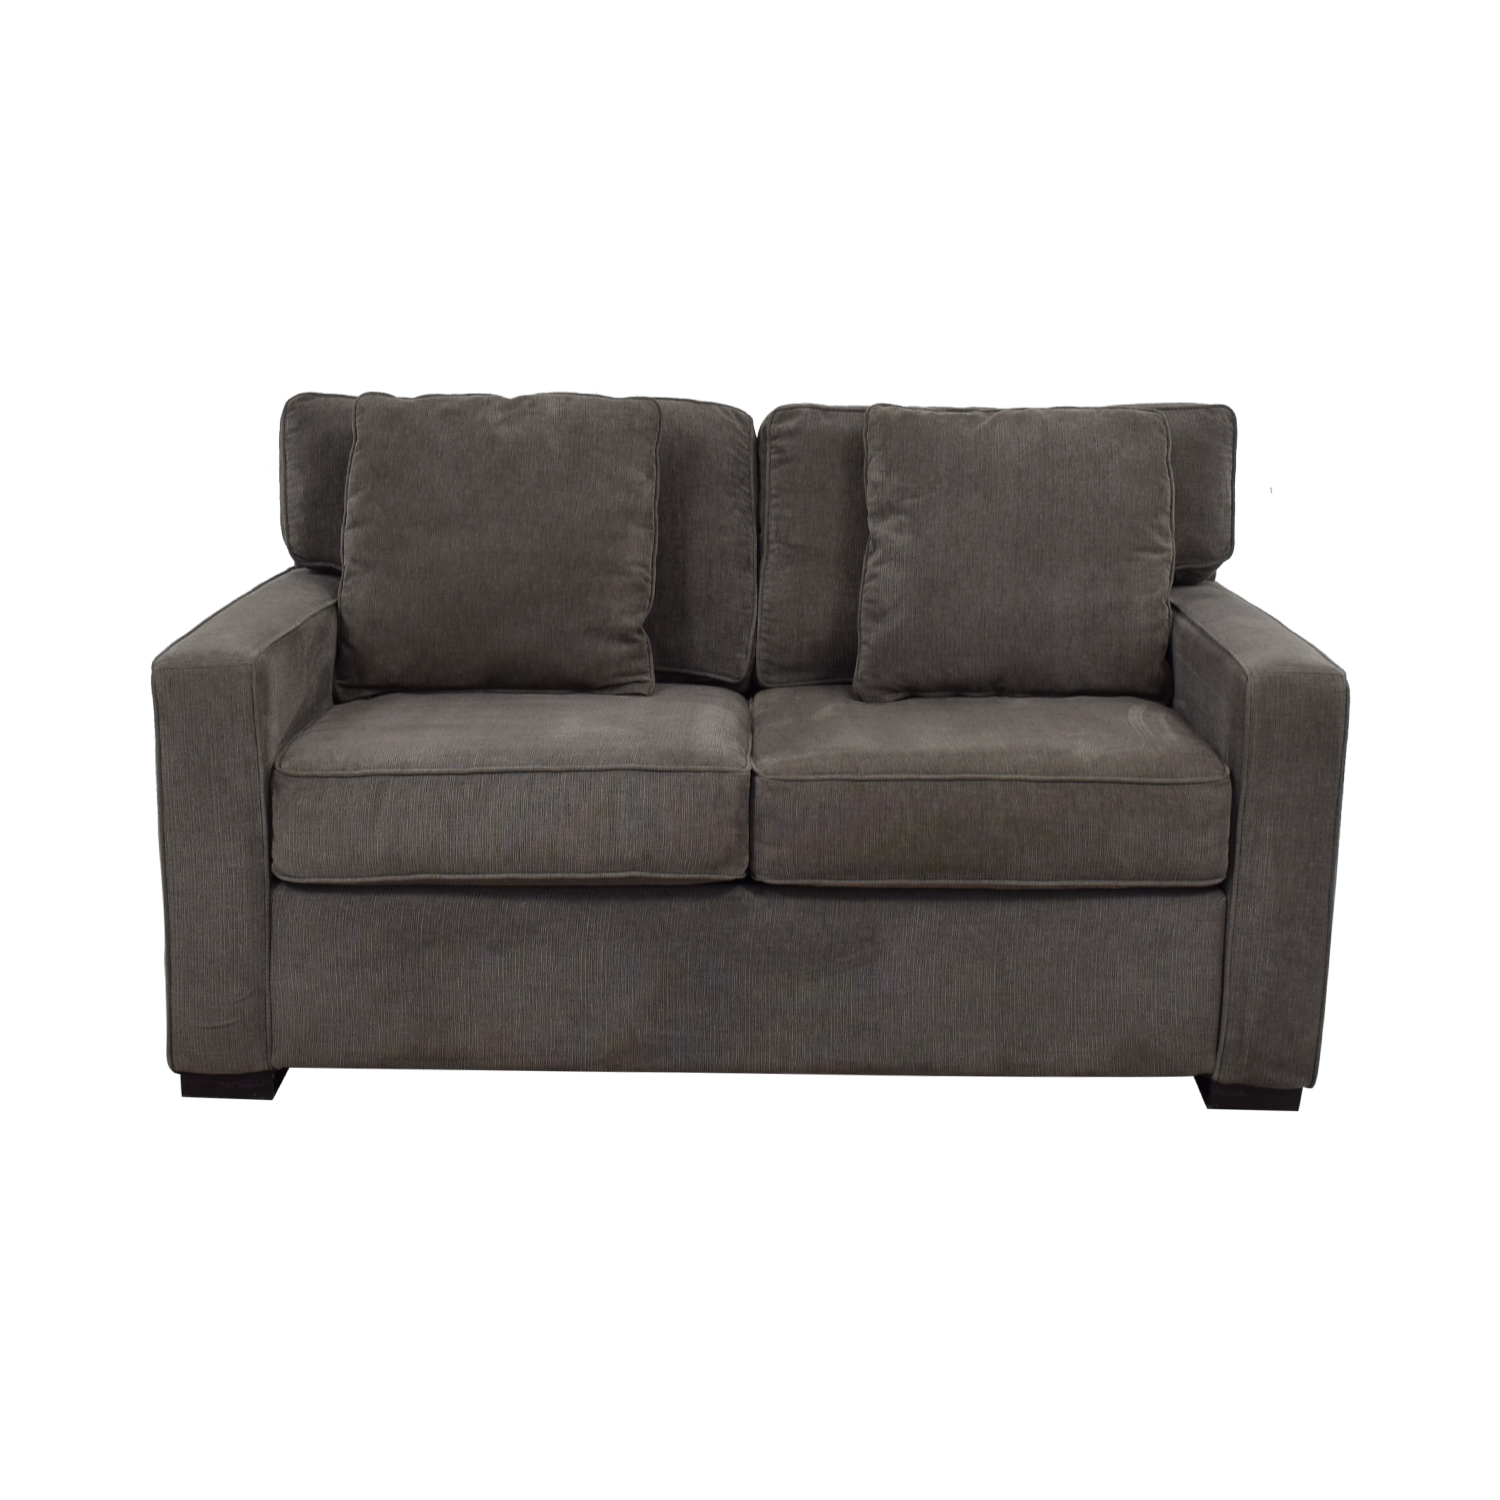 Macy's Macy's Radley Grey Loveseat Grey